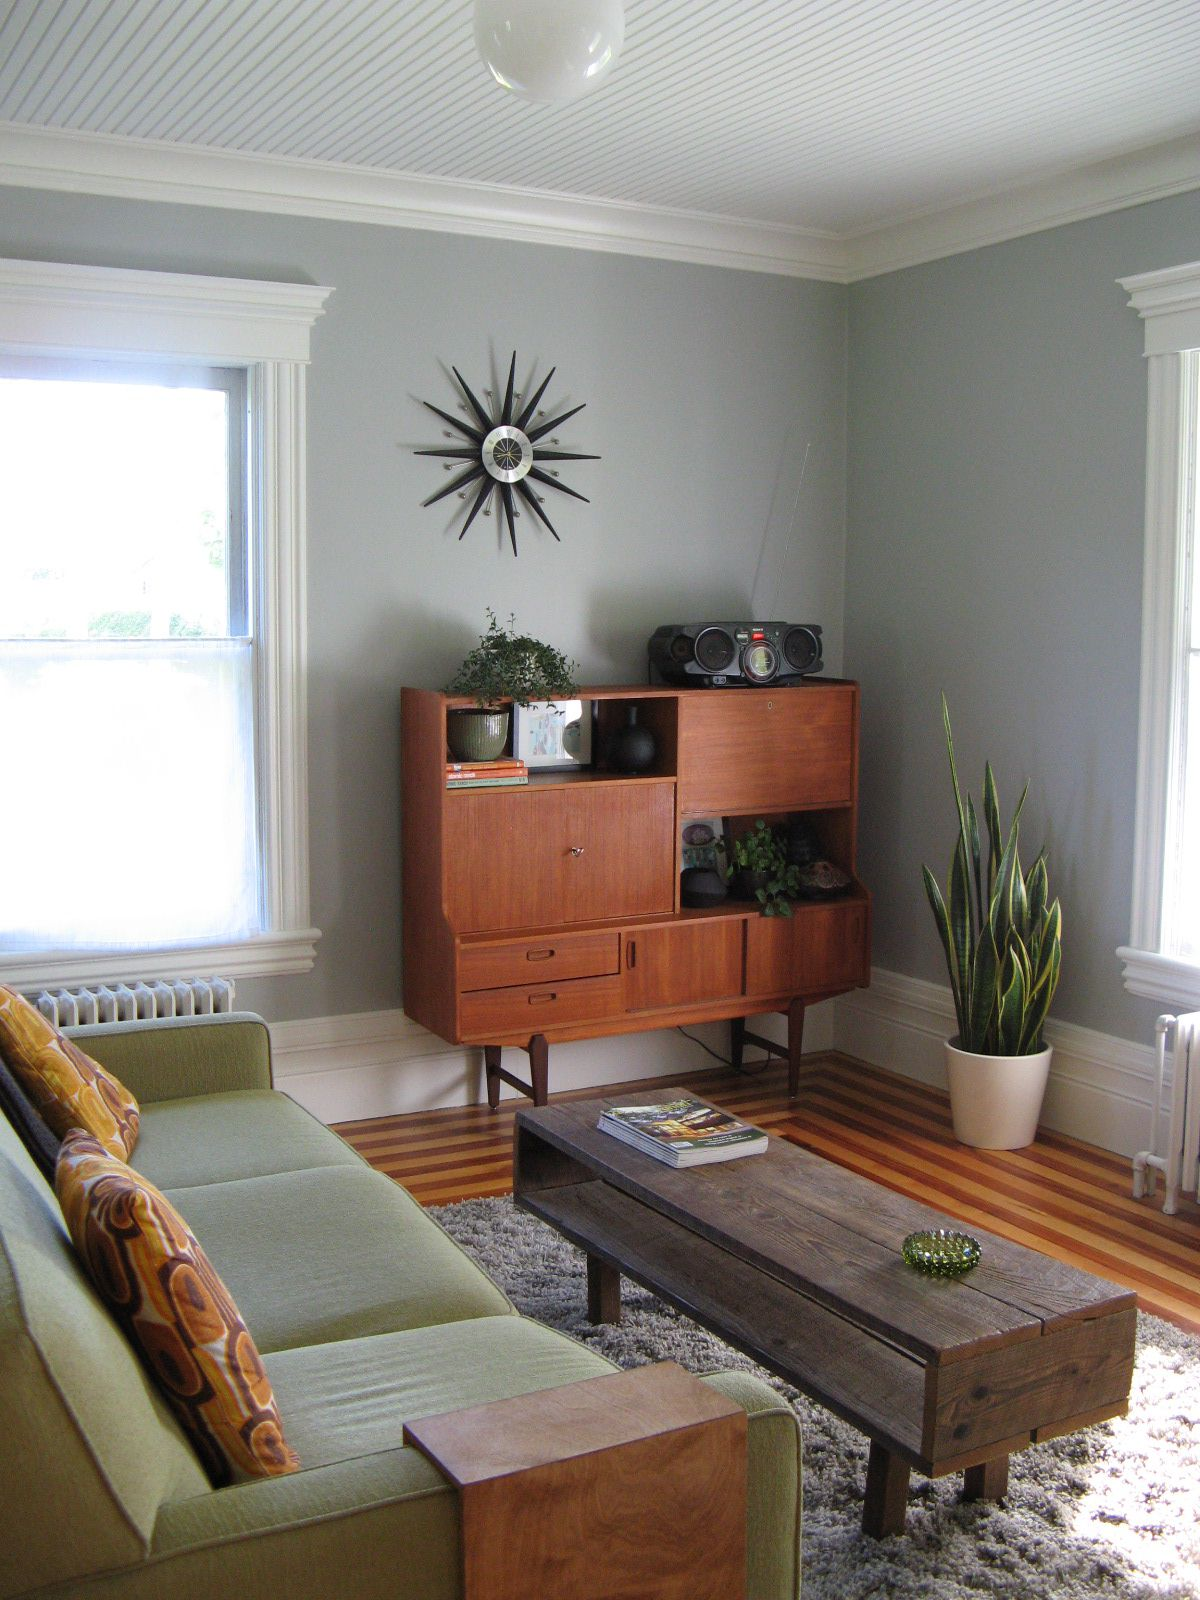 Fascinating Furniture Decor with Wooden Storage in Small Living Room close Dust Wall